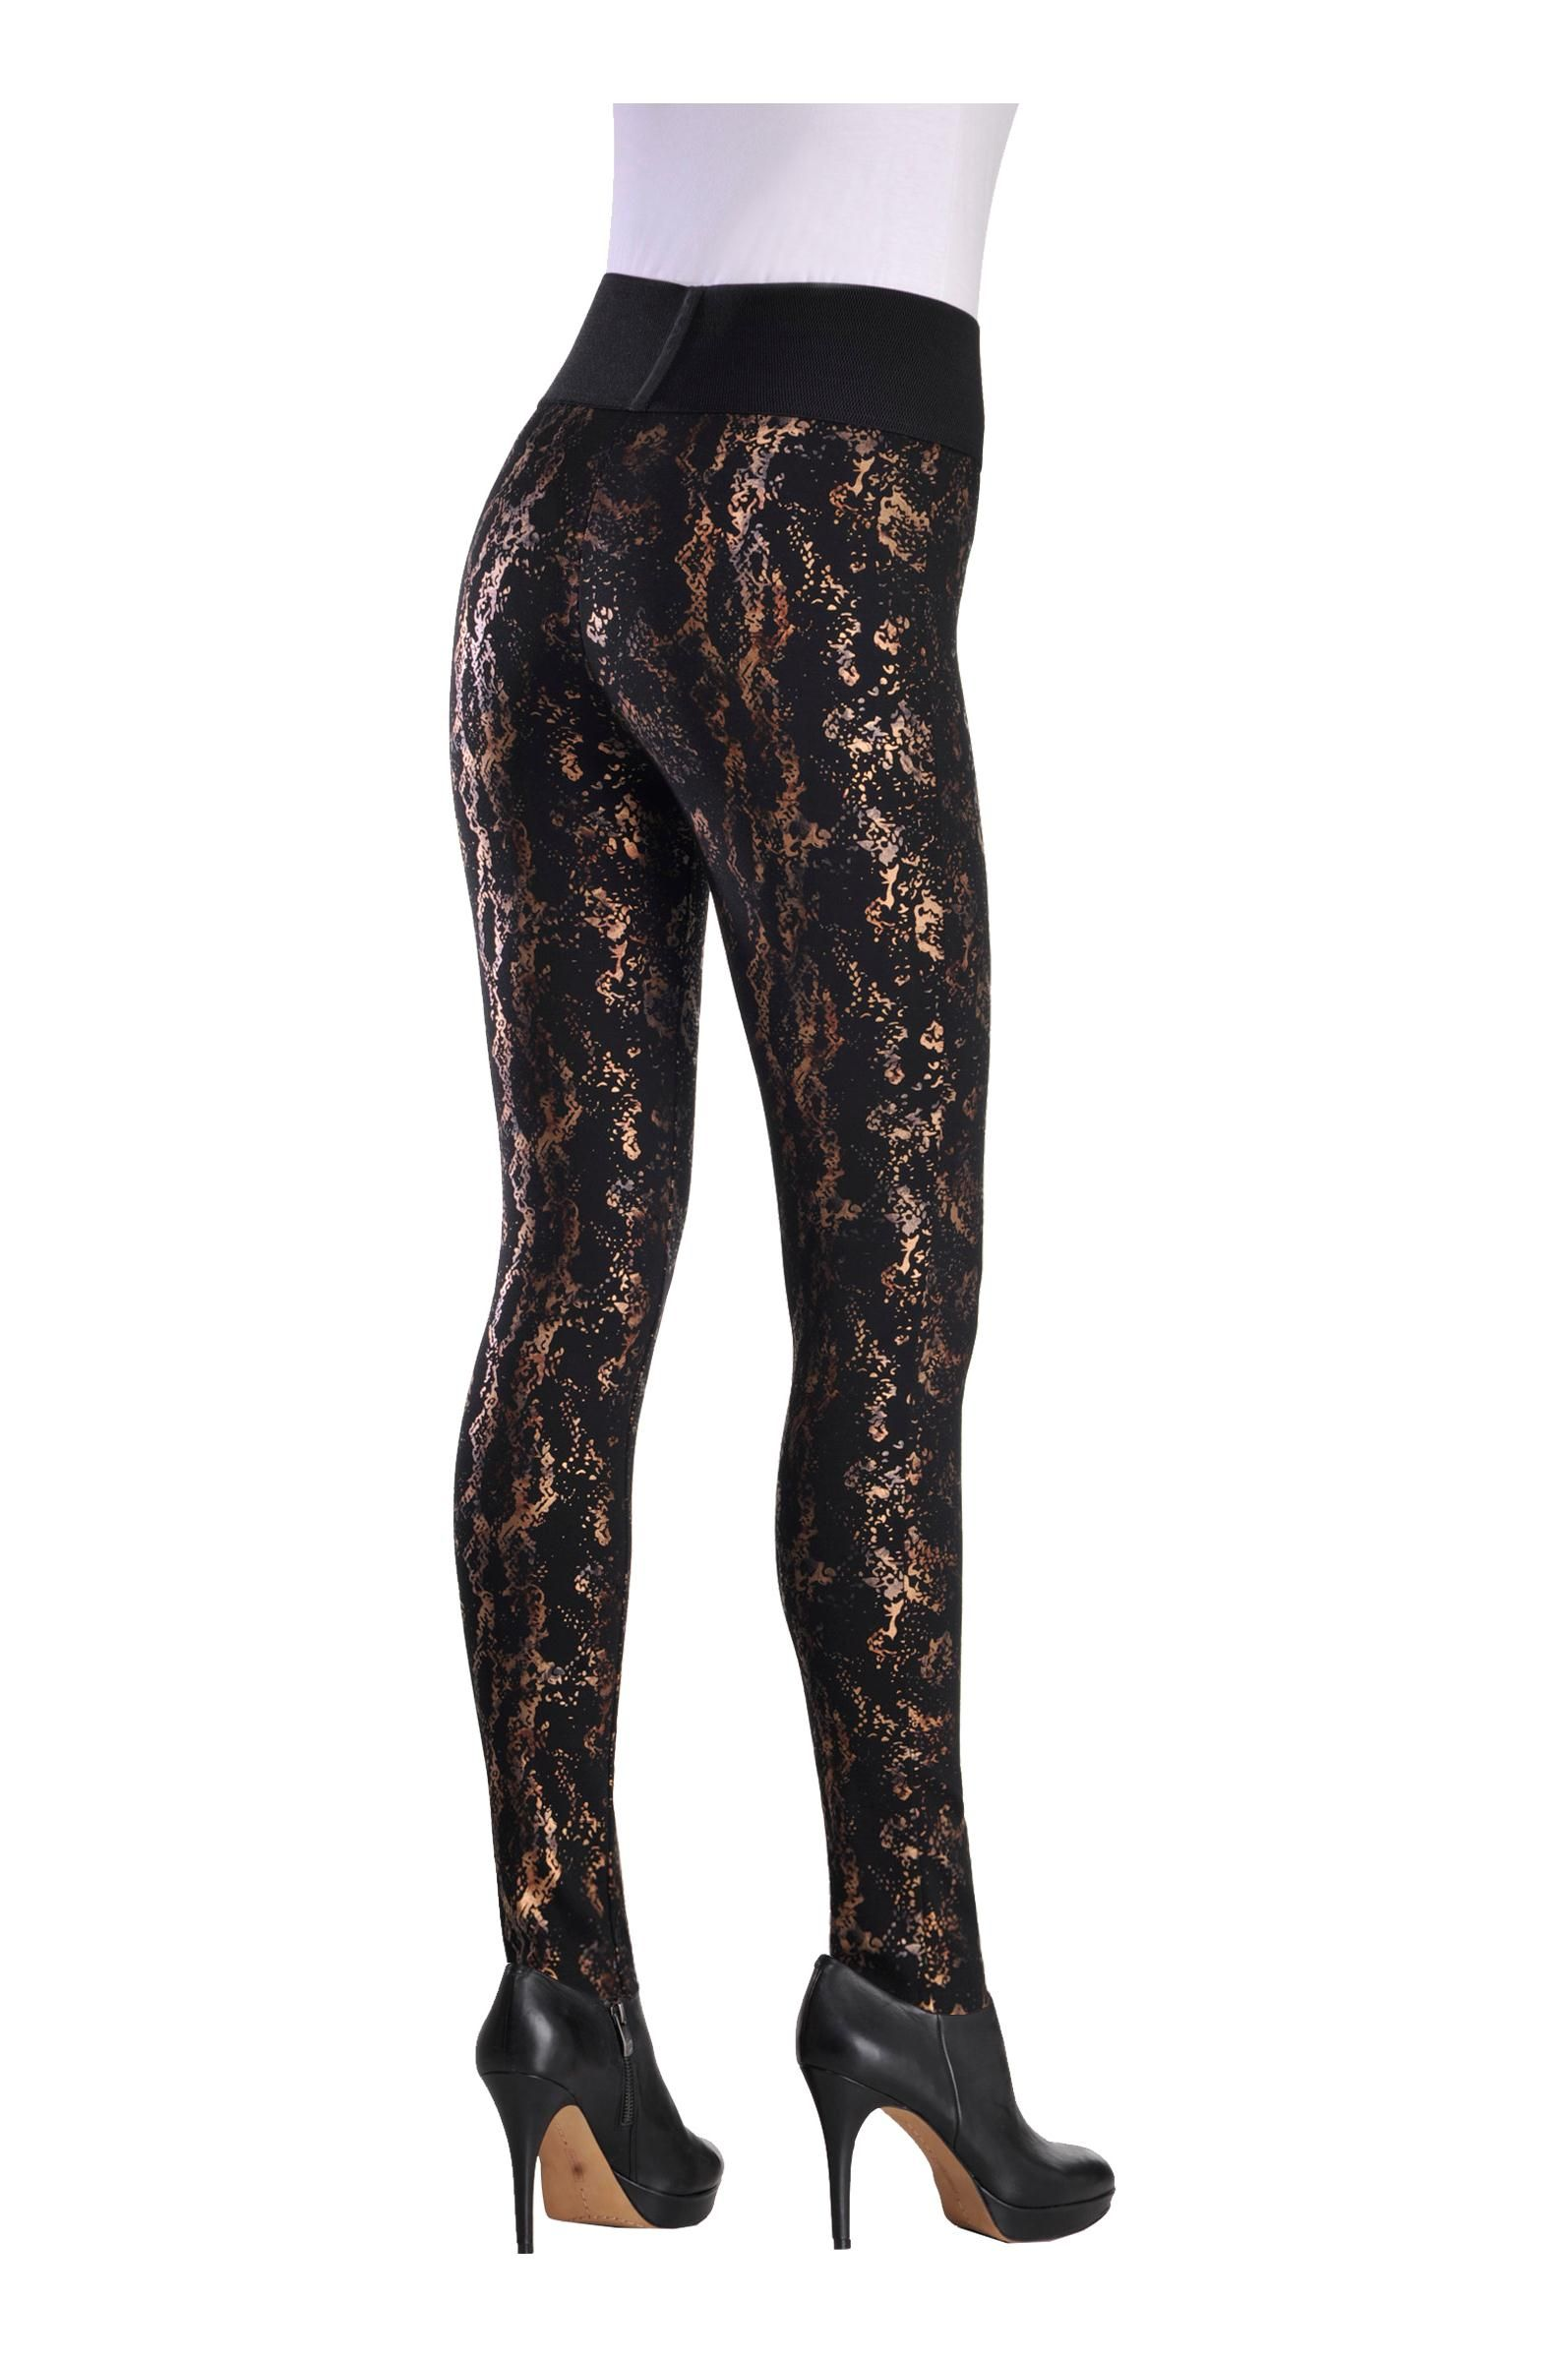 f882e5dca4c7 Peter Nygard Slims, Gold Foil Leggings, 2014, - 03 | Paula's ...